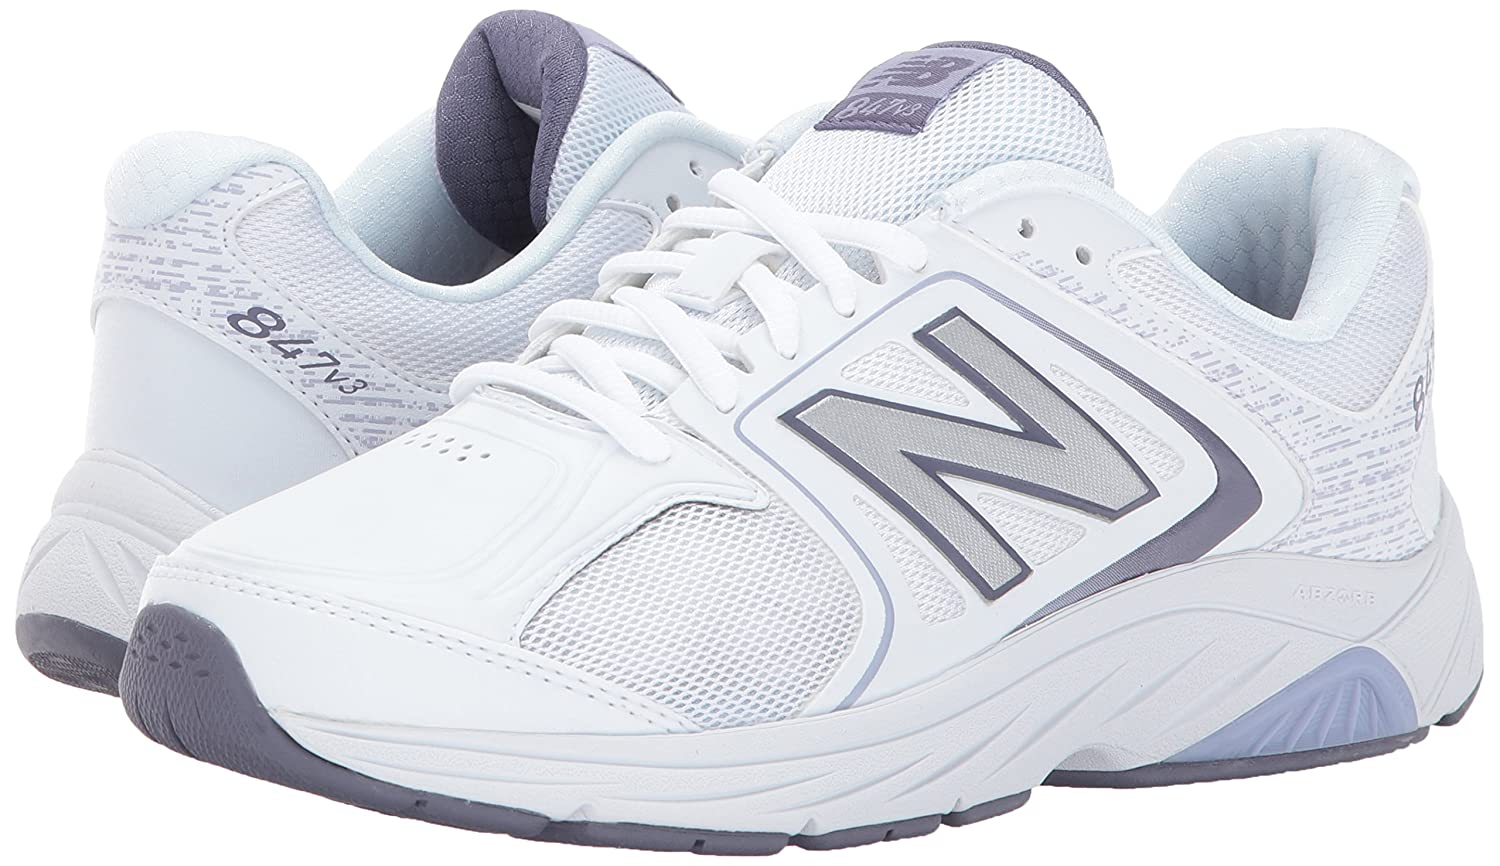 New Balance Women's 847v3 Walking Shoe B01N0GJSUY 8 D US|White/Grey